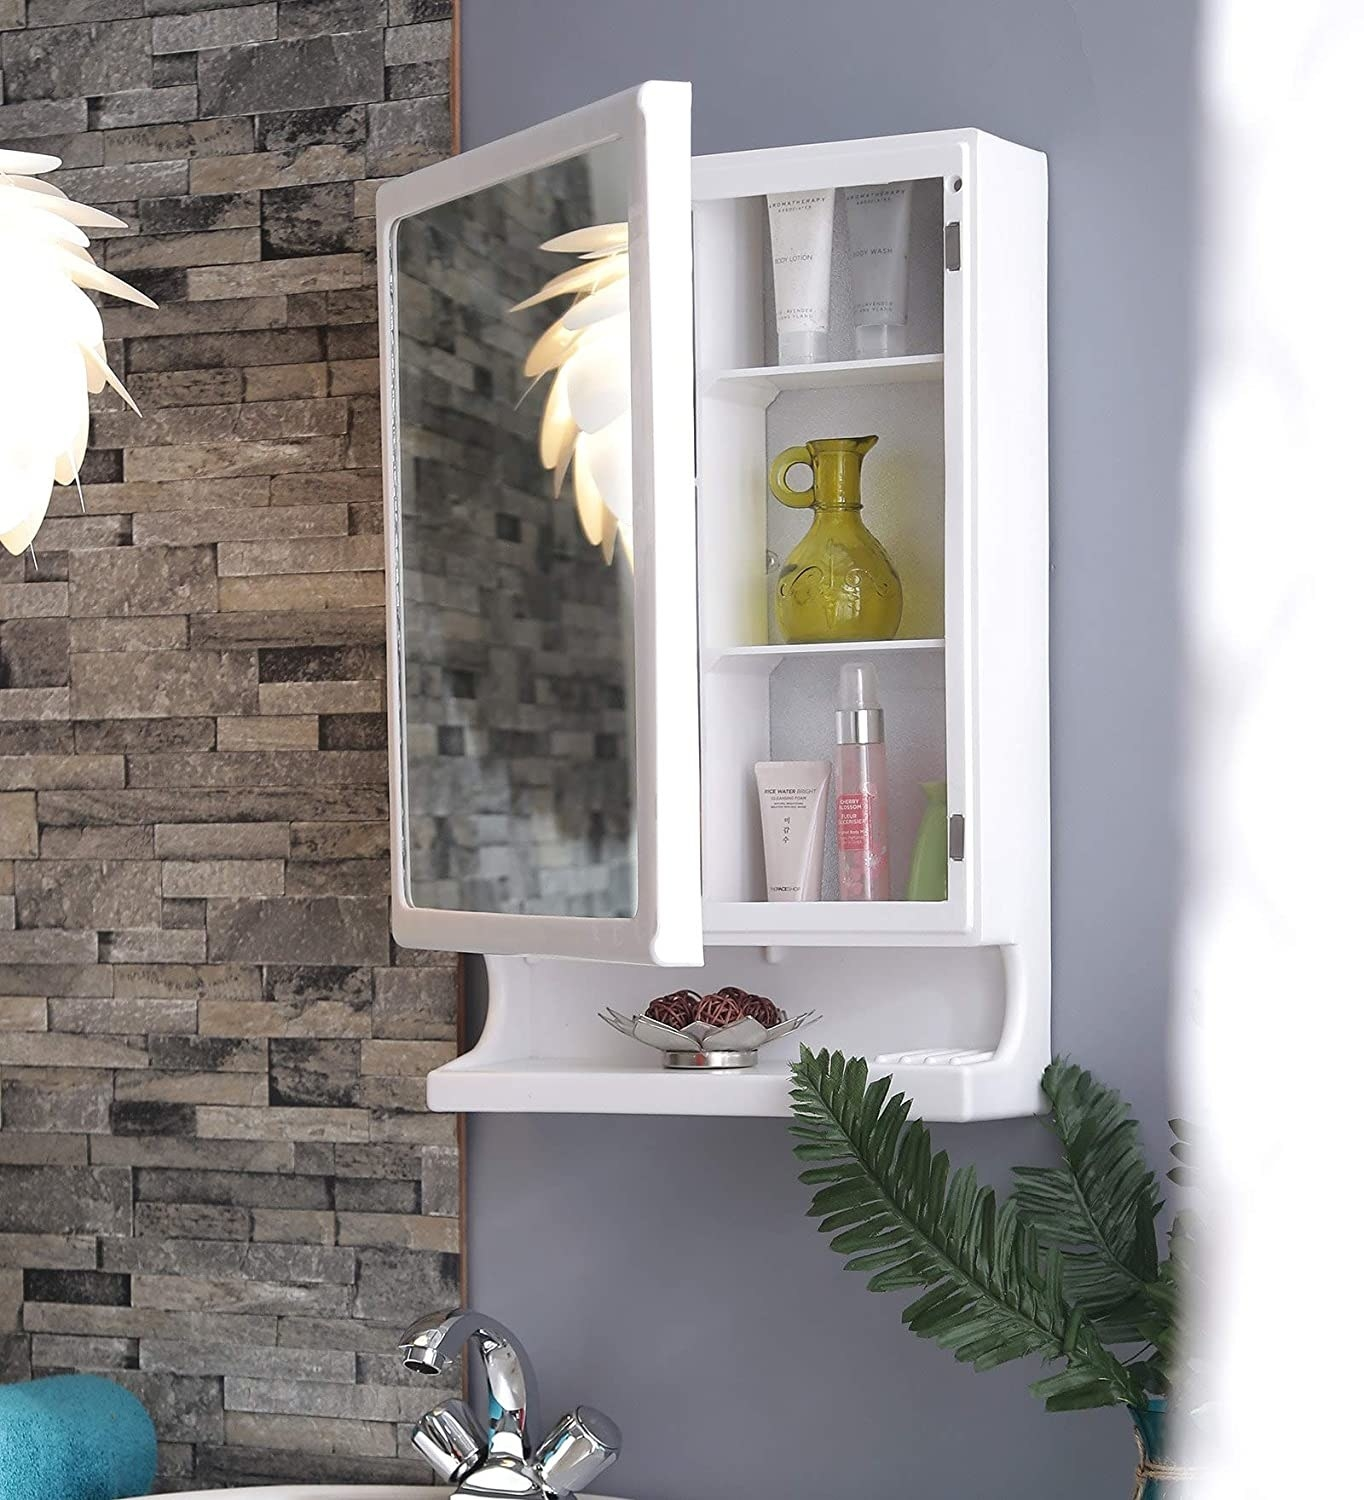 A white bathroom cabinet with a mirror and storage racks